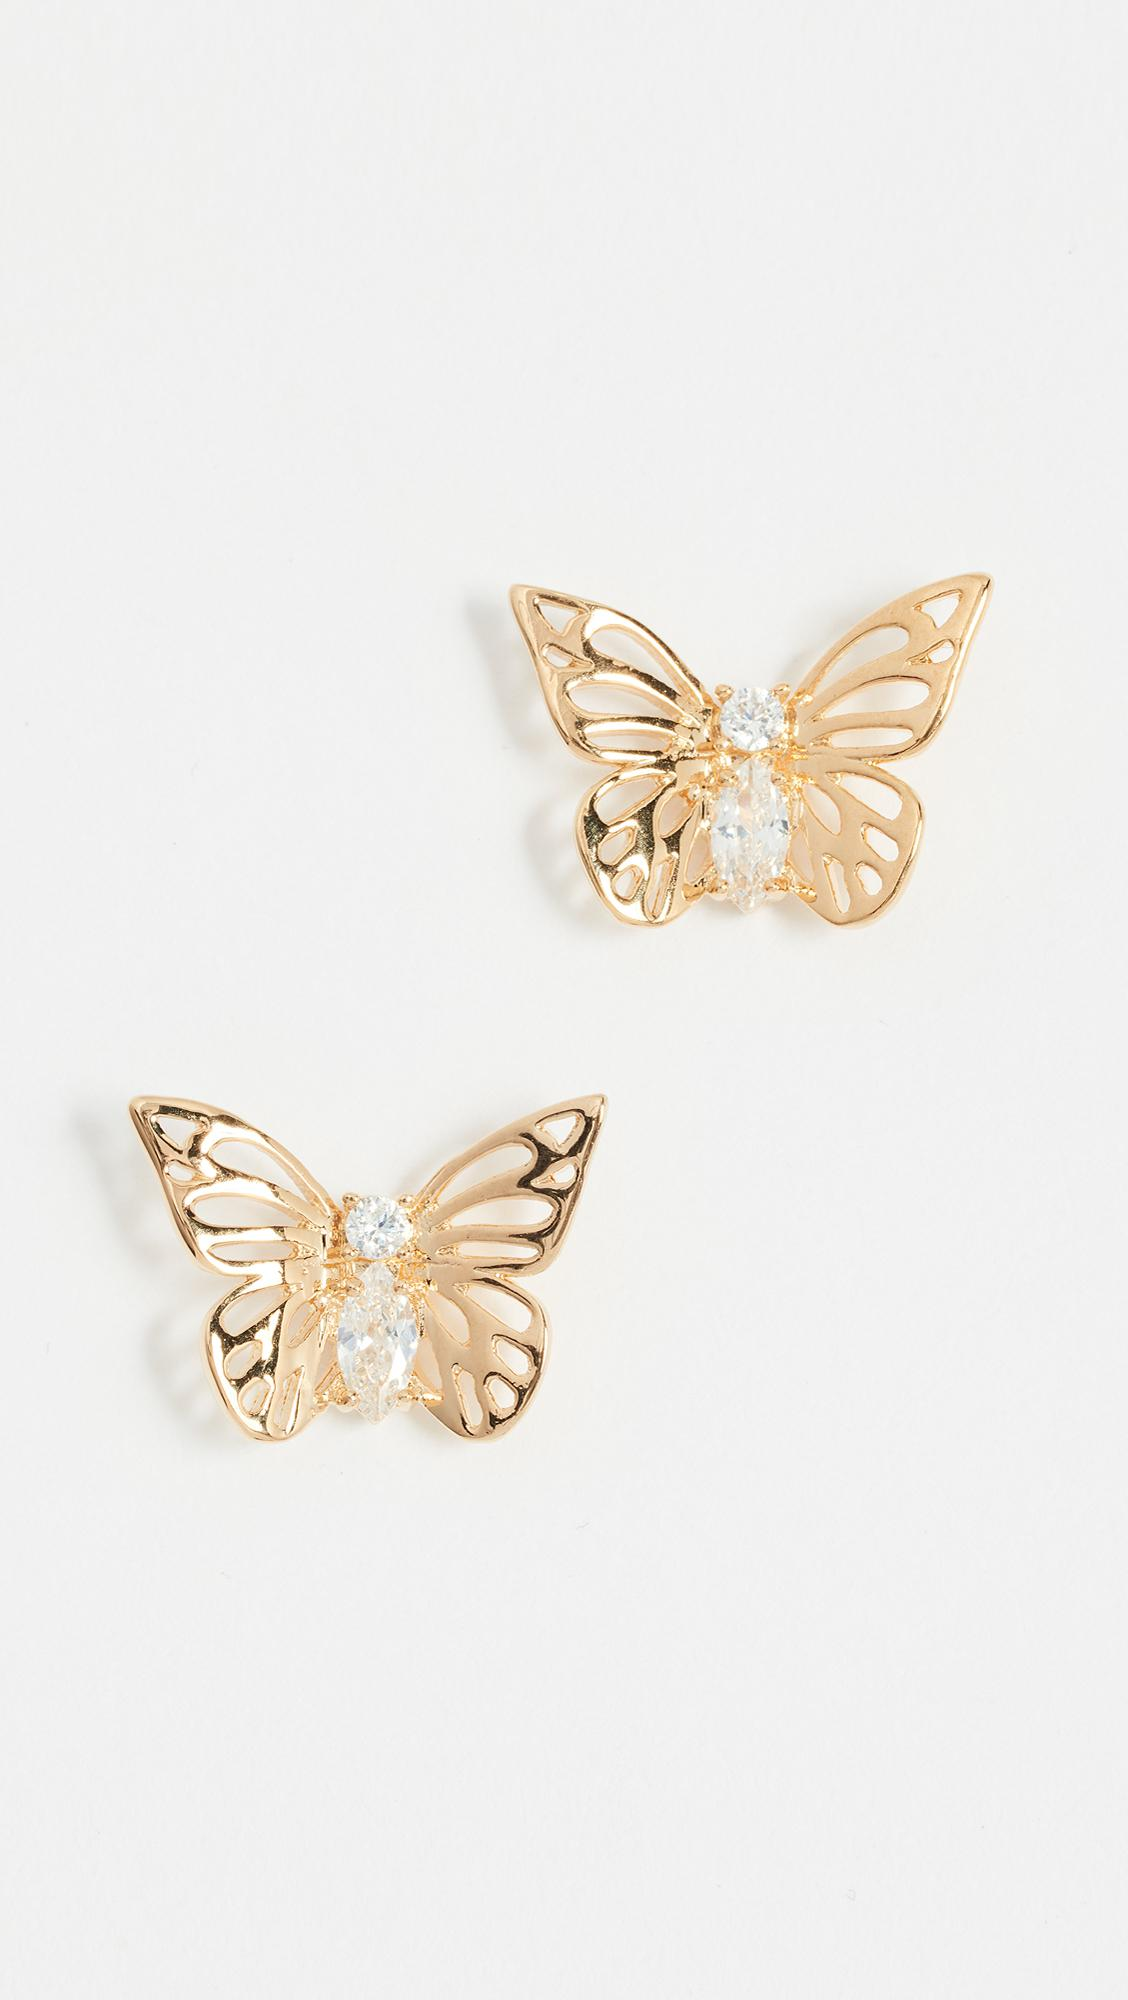 95afc4e2fb9a3 Lyst - Kate Spade Social Butterfly Studs in Metallic